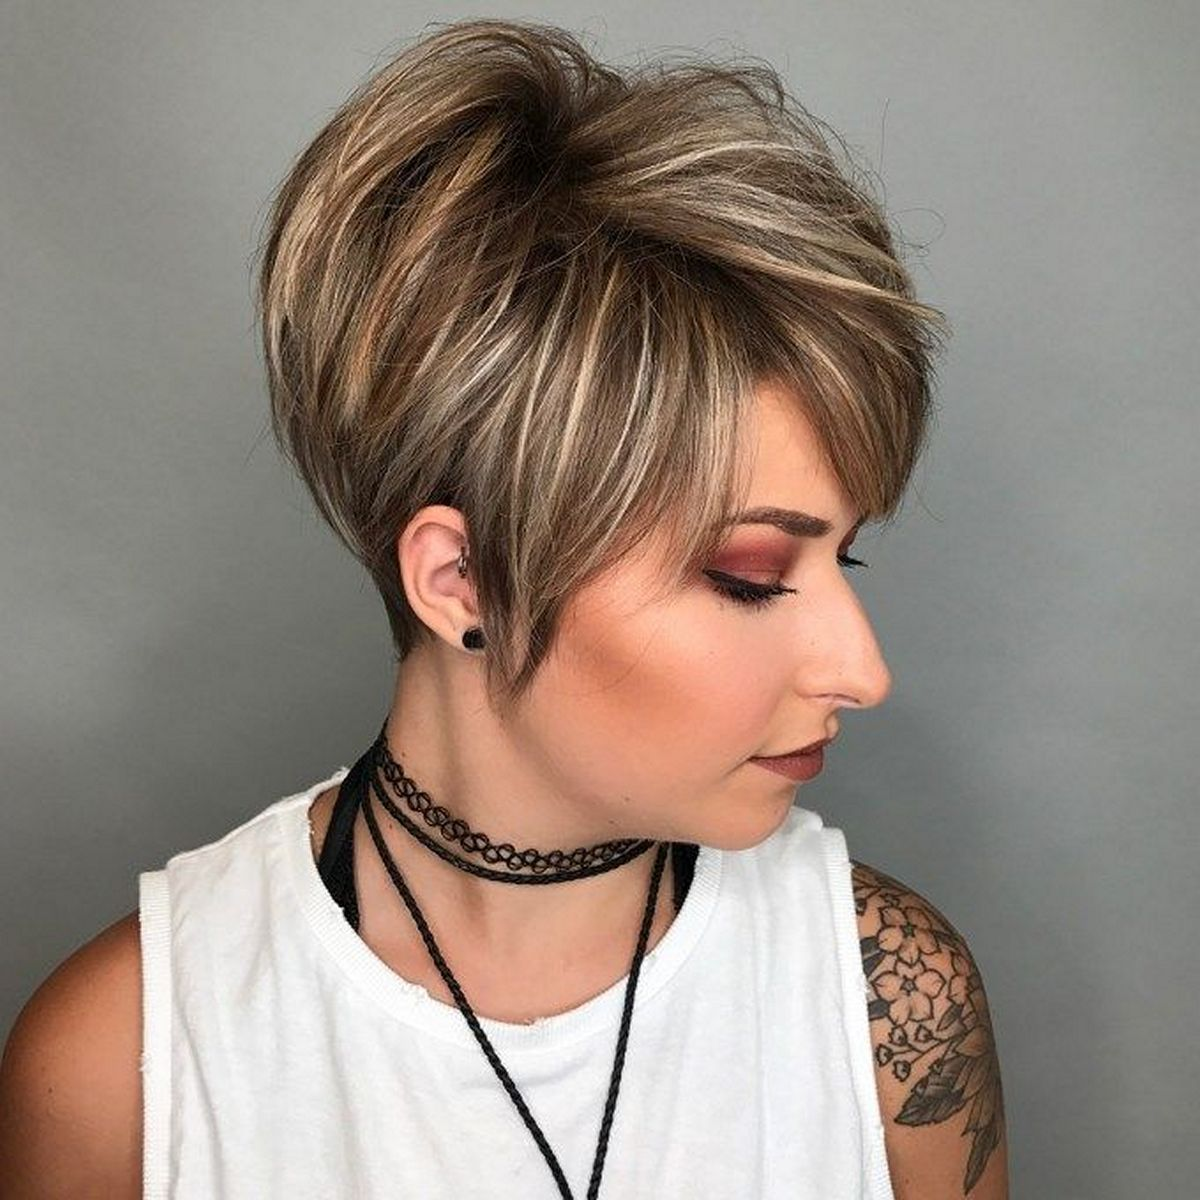 32 Top Short Pixie Haircuts Ideas For Women 2018 2019 Short